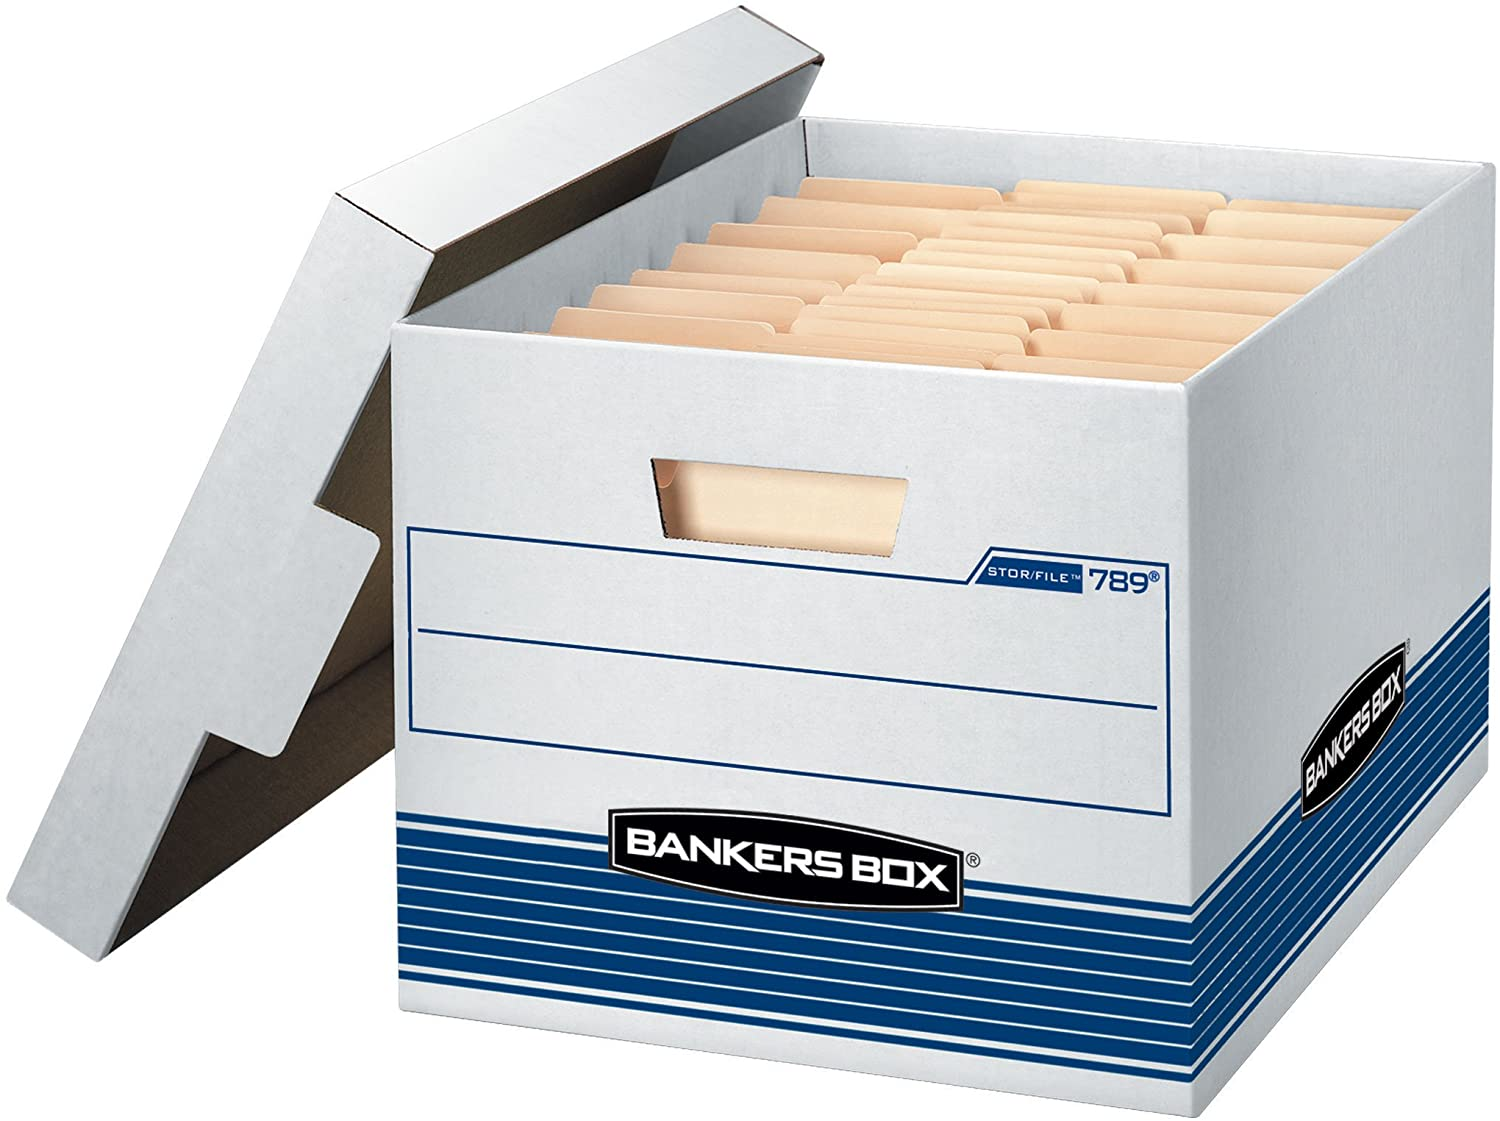 Bankers Box STOR/File Medium-Duty Storage Boxes, Quick Set-Up, Lift-Off Lid, Letter/Legal, 4 Pack (0078907)